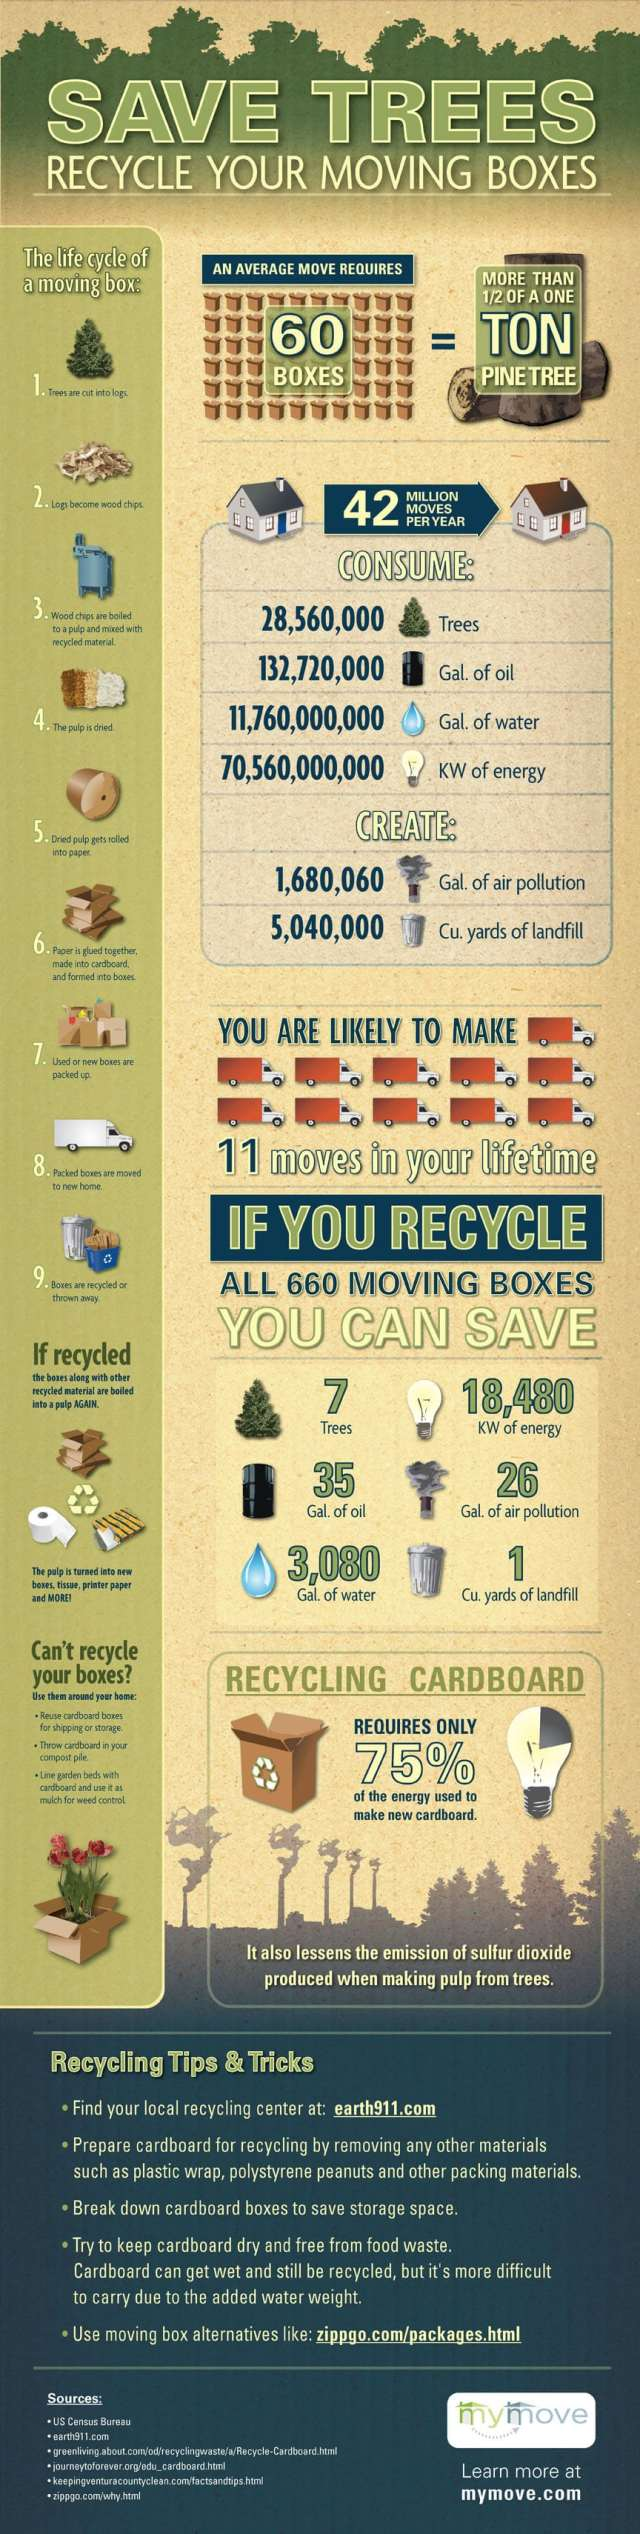 Save Trees and Recycle Your Moving Boxes Infographic